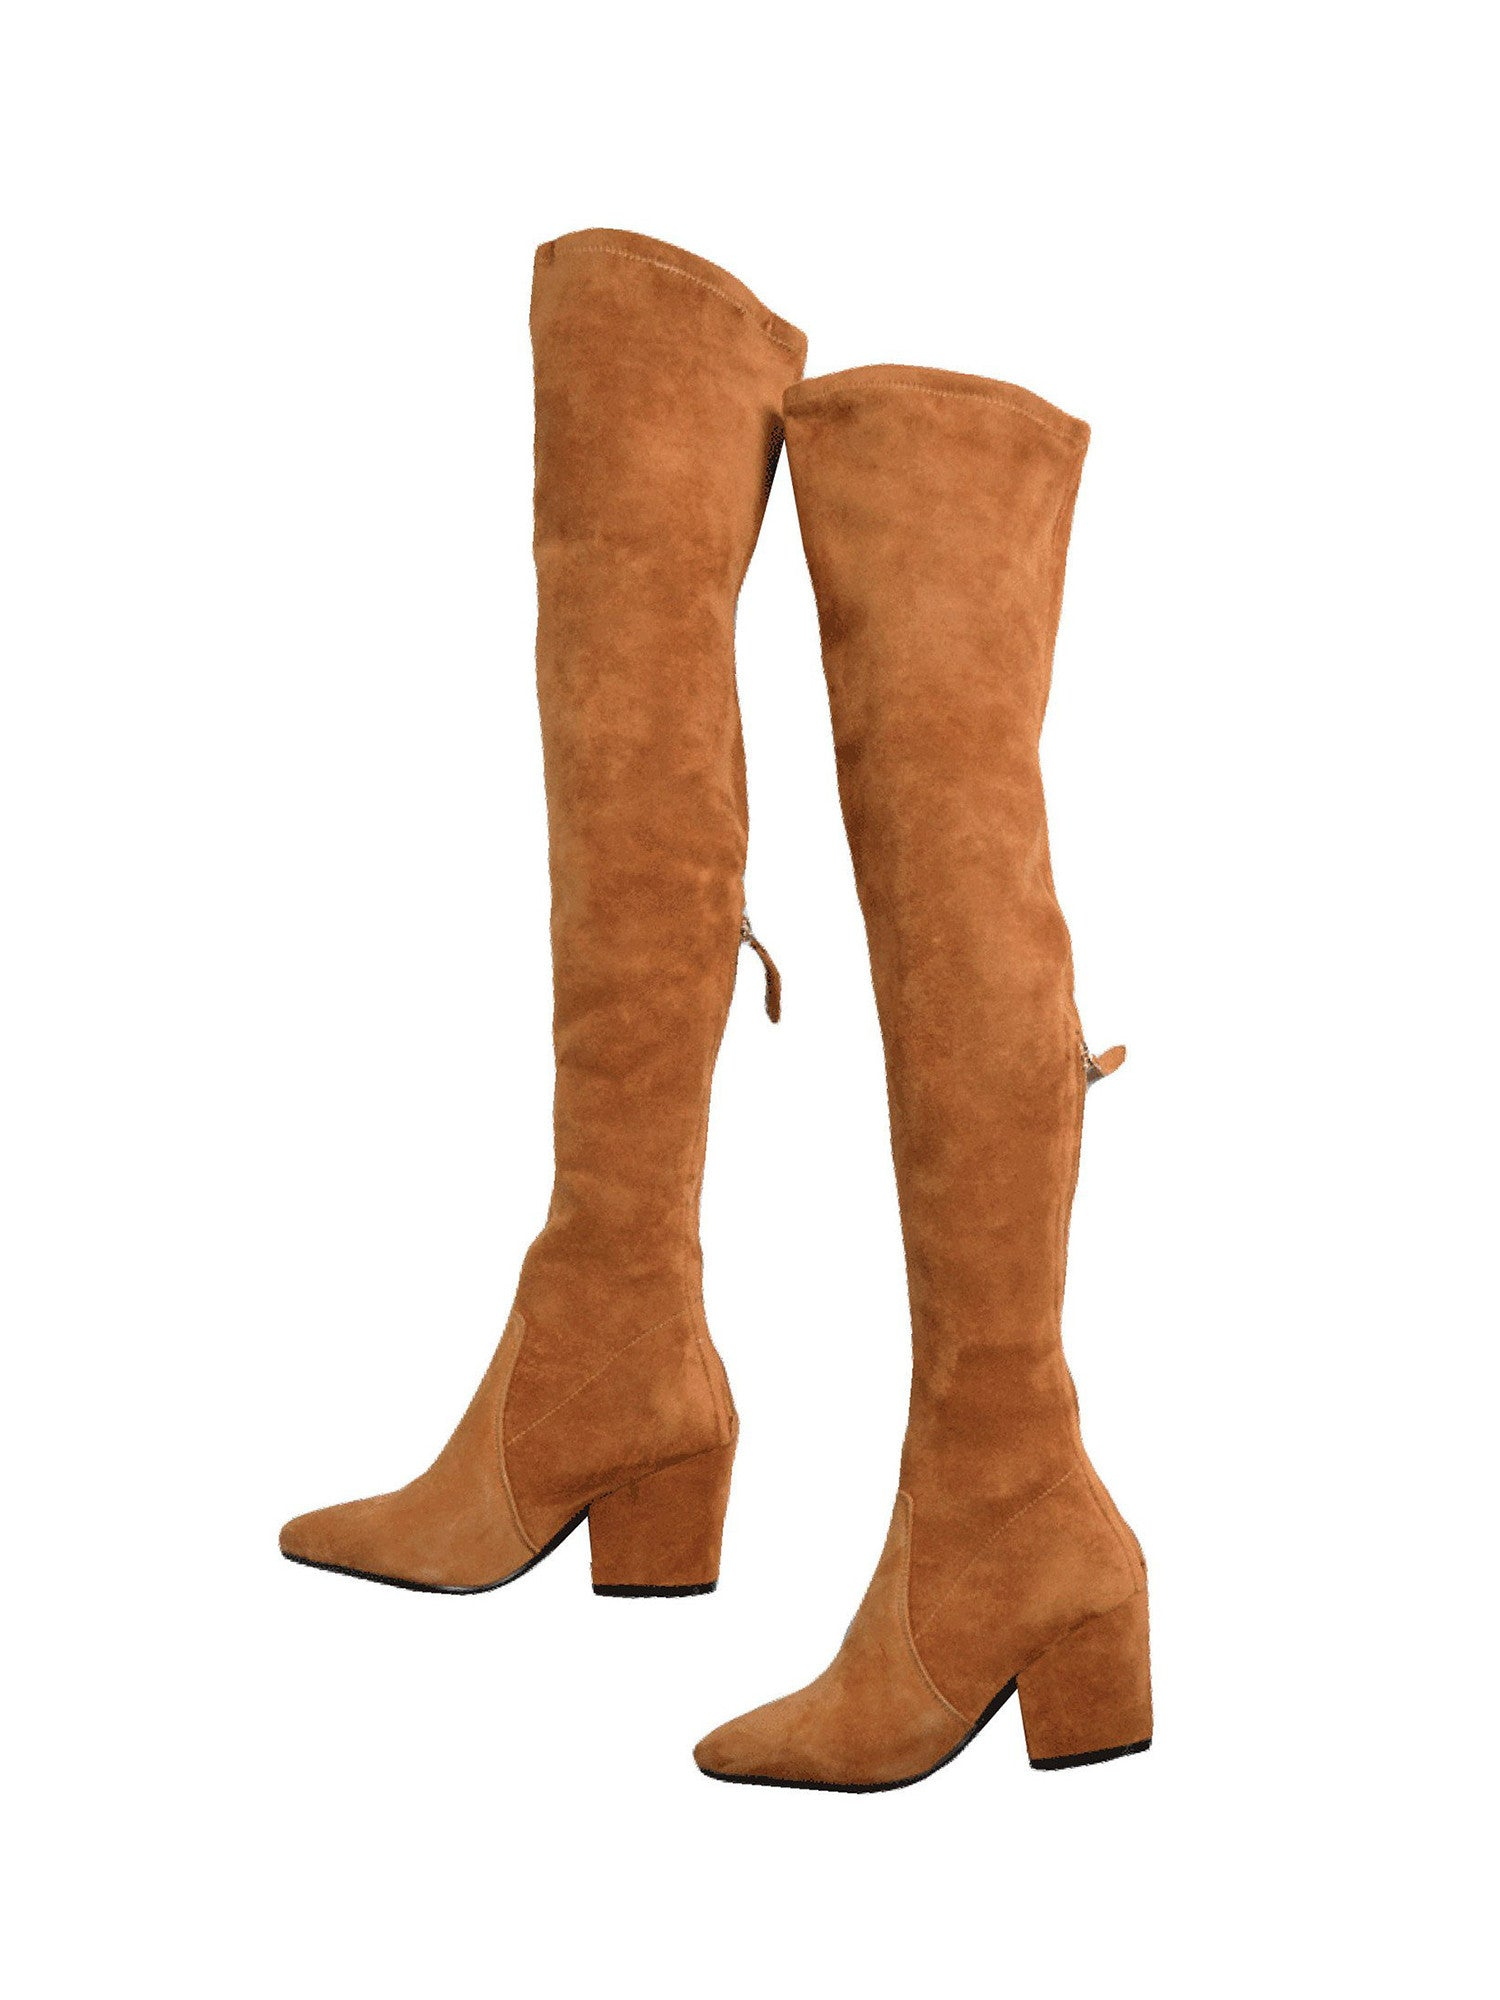 Marlo' Tan Over The Knee Suede Leather